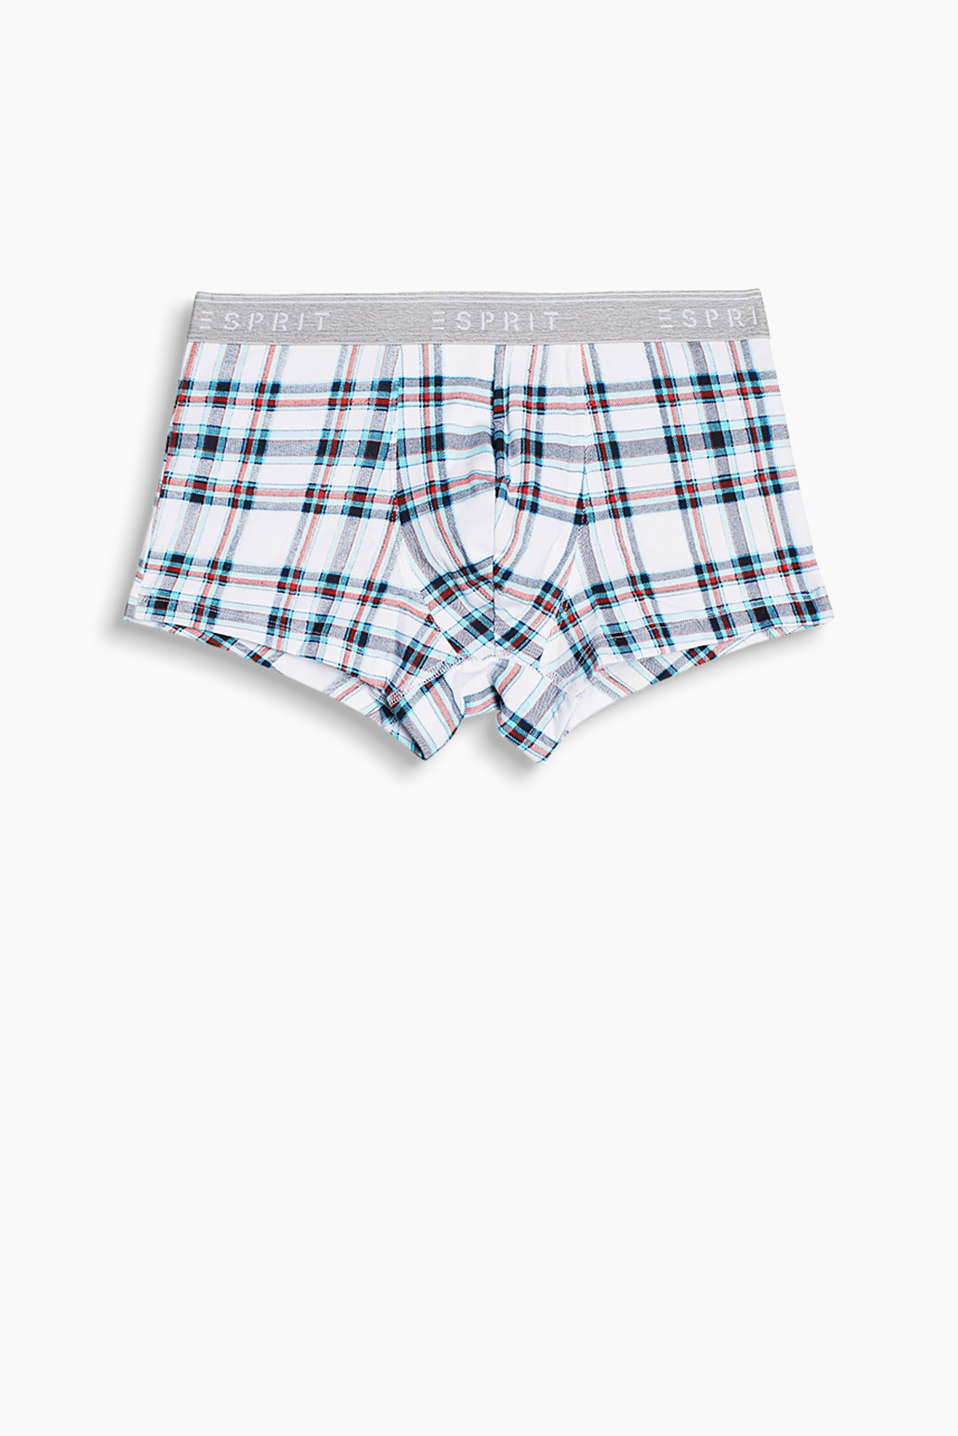 Hipster shorts with a modern check pattern and elasticated logo waistband, stretch cotton